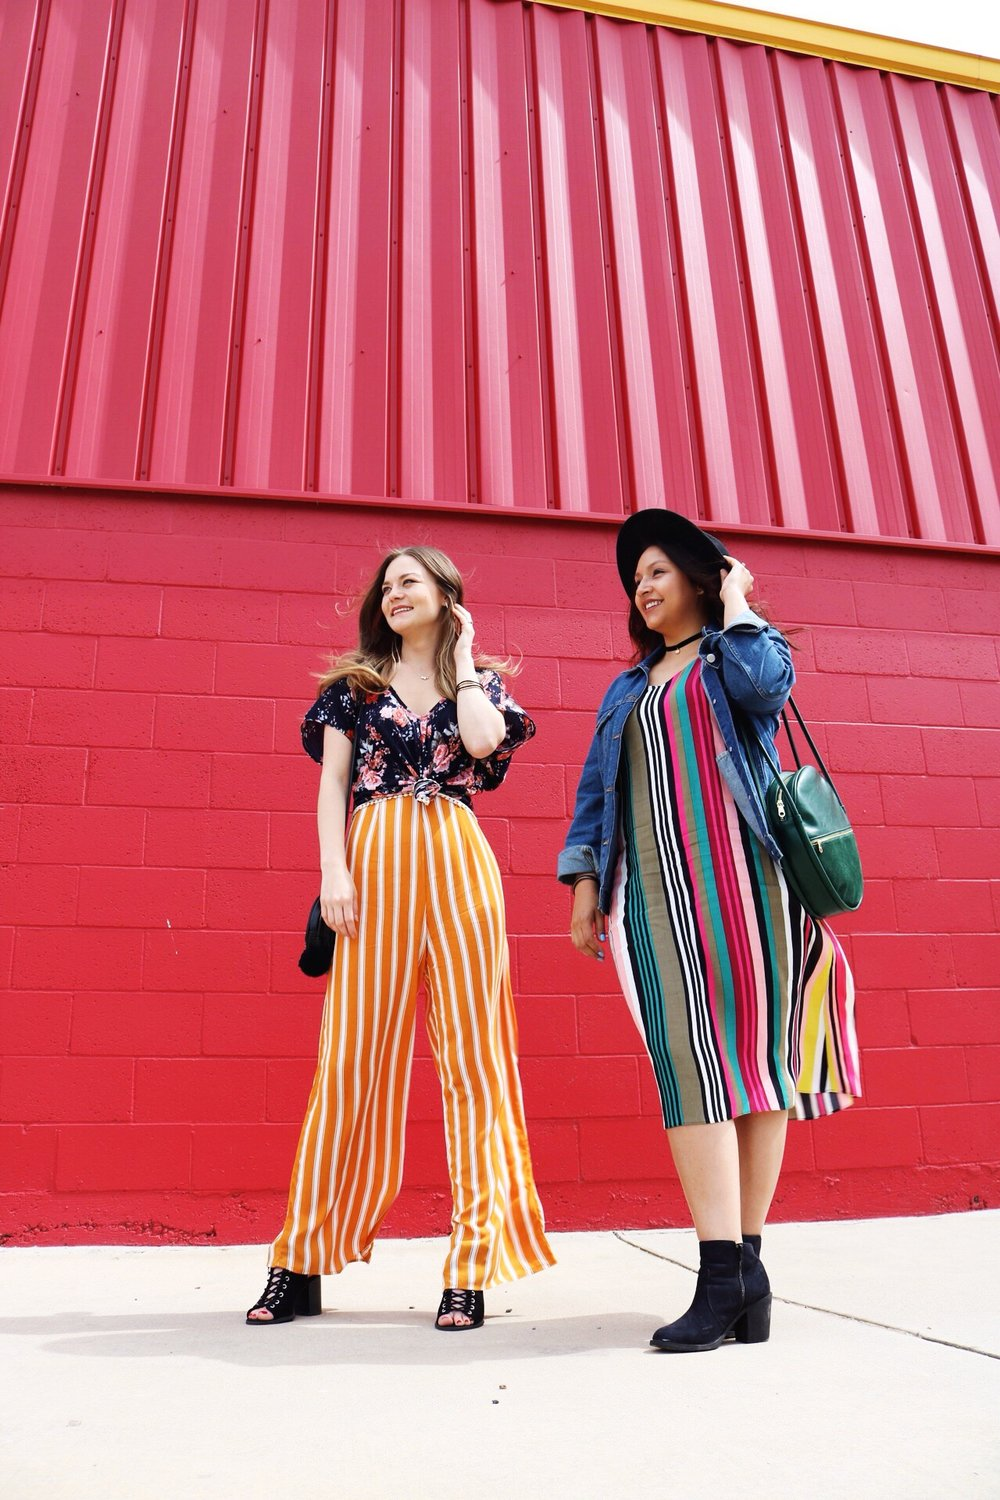 Yellow Striped jumpsuit with floral top. Express Multicolor striped spaghetti strap midi slip dress. Red wall